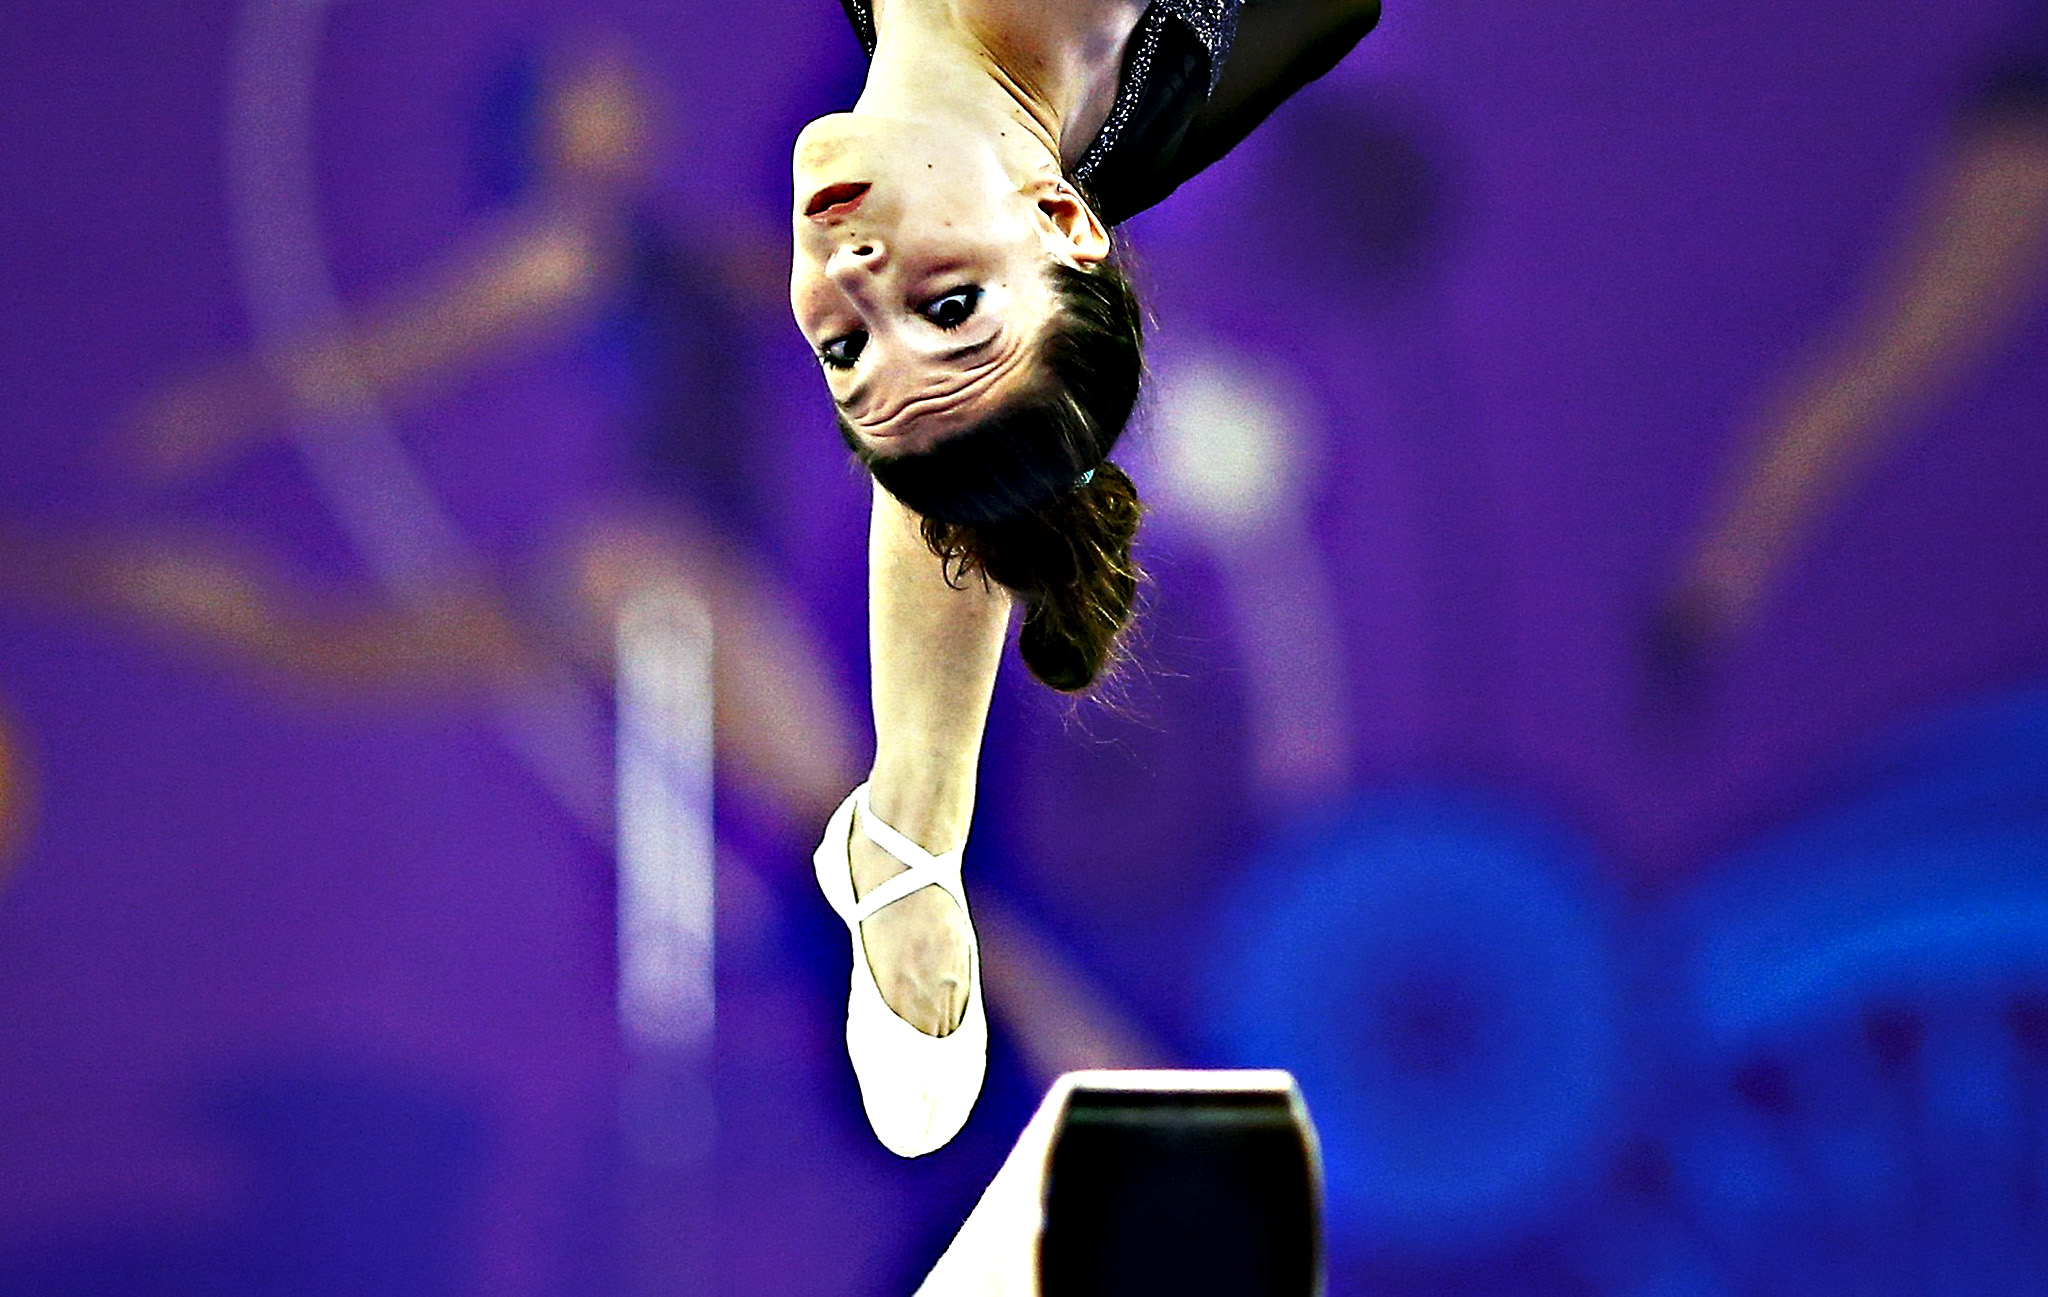 Ioanna Xoulogi of Greece competes on the beam during the women's gymnastics team event at the 1st European Games in Baku, Azerbaijan